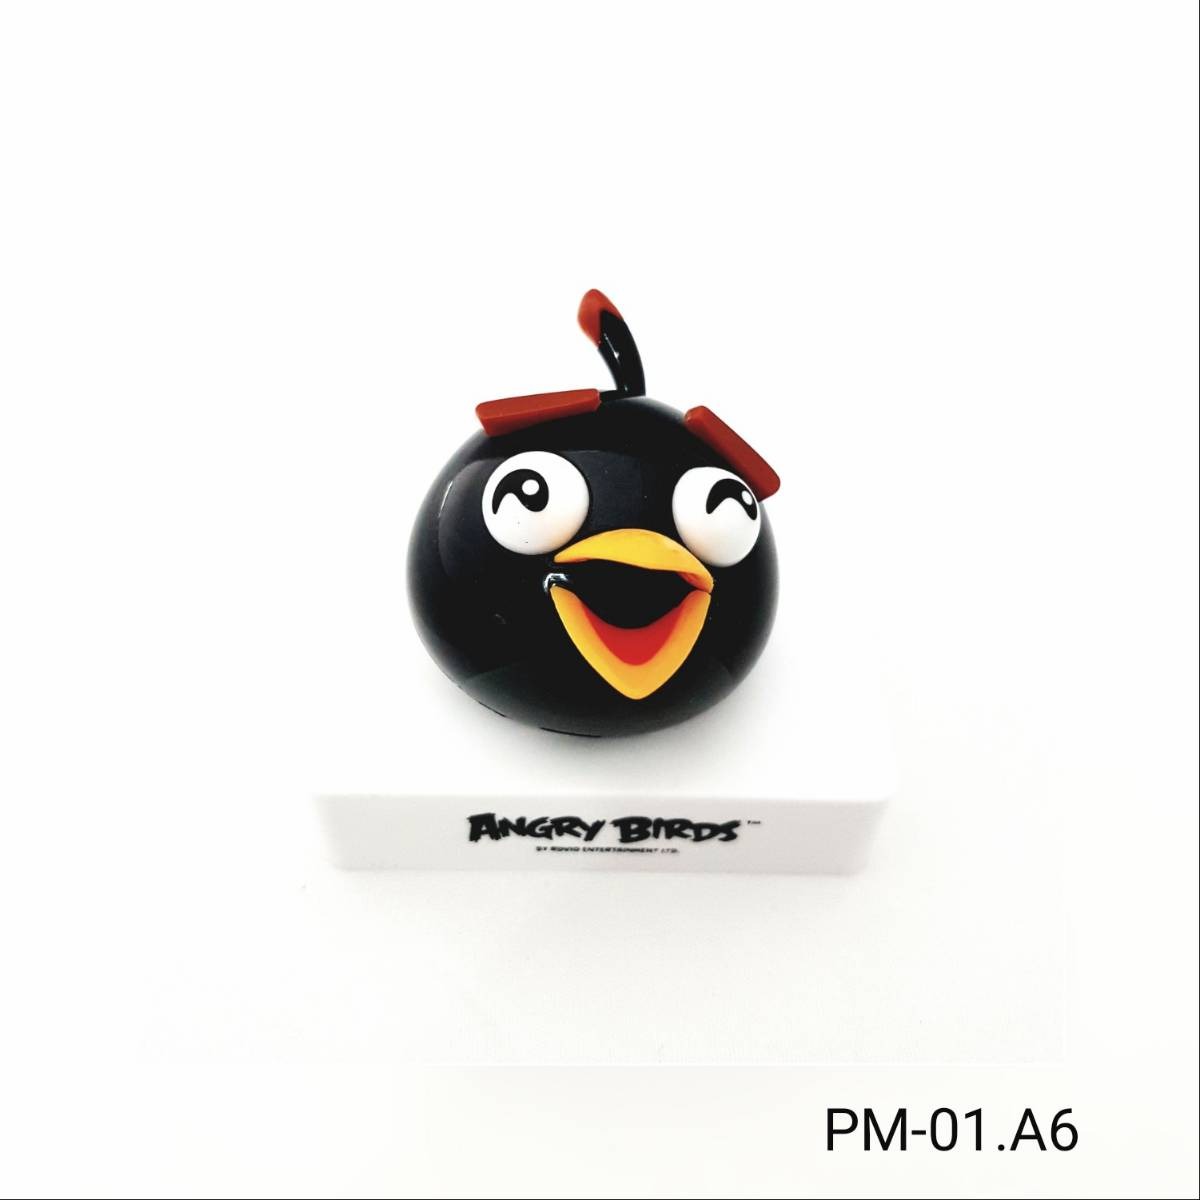 Parfum Mobil Angry Birds Collection Pm-001/a6